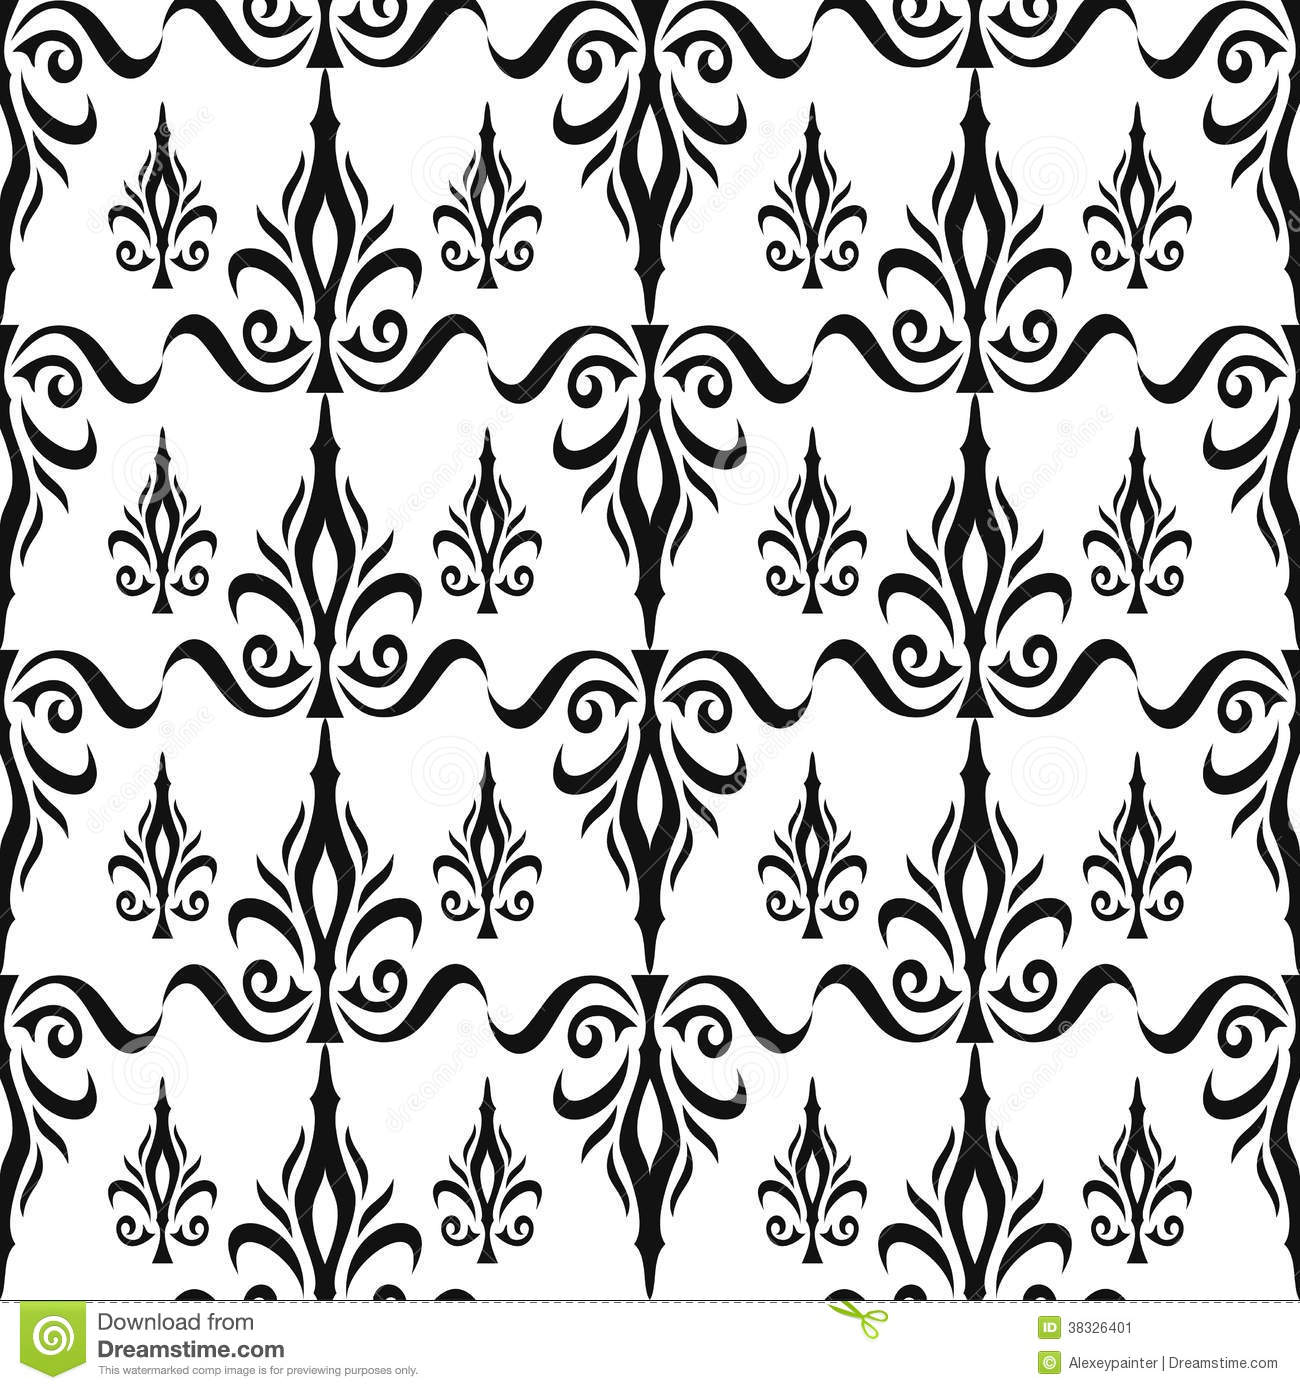 Damask Seamless Floral Pattern Royal Wallpaper Flowers And Crowns